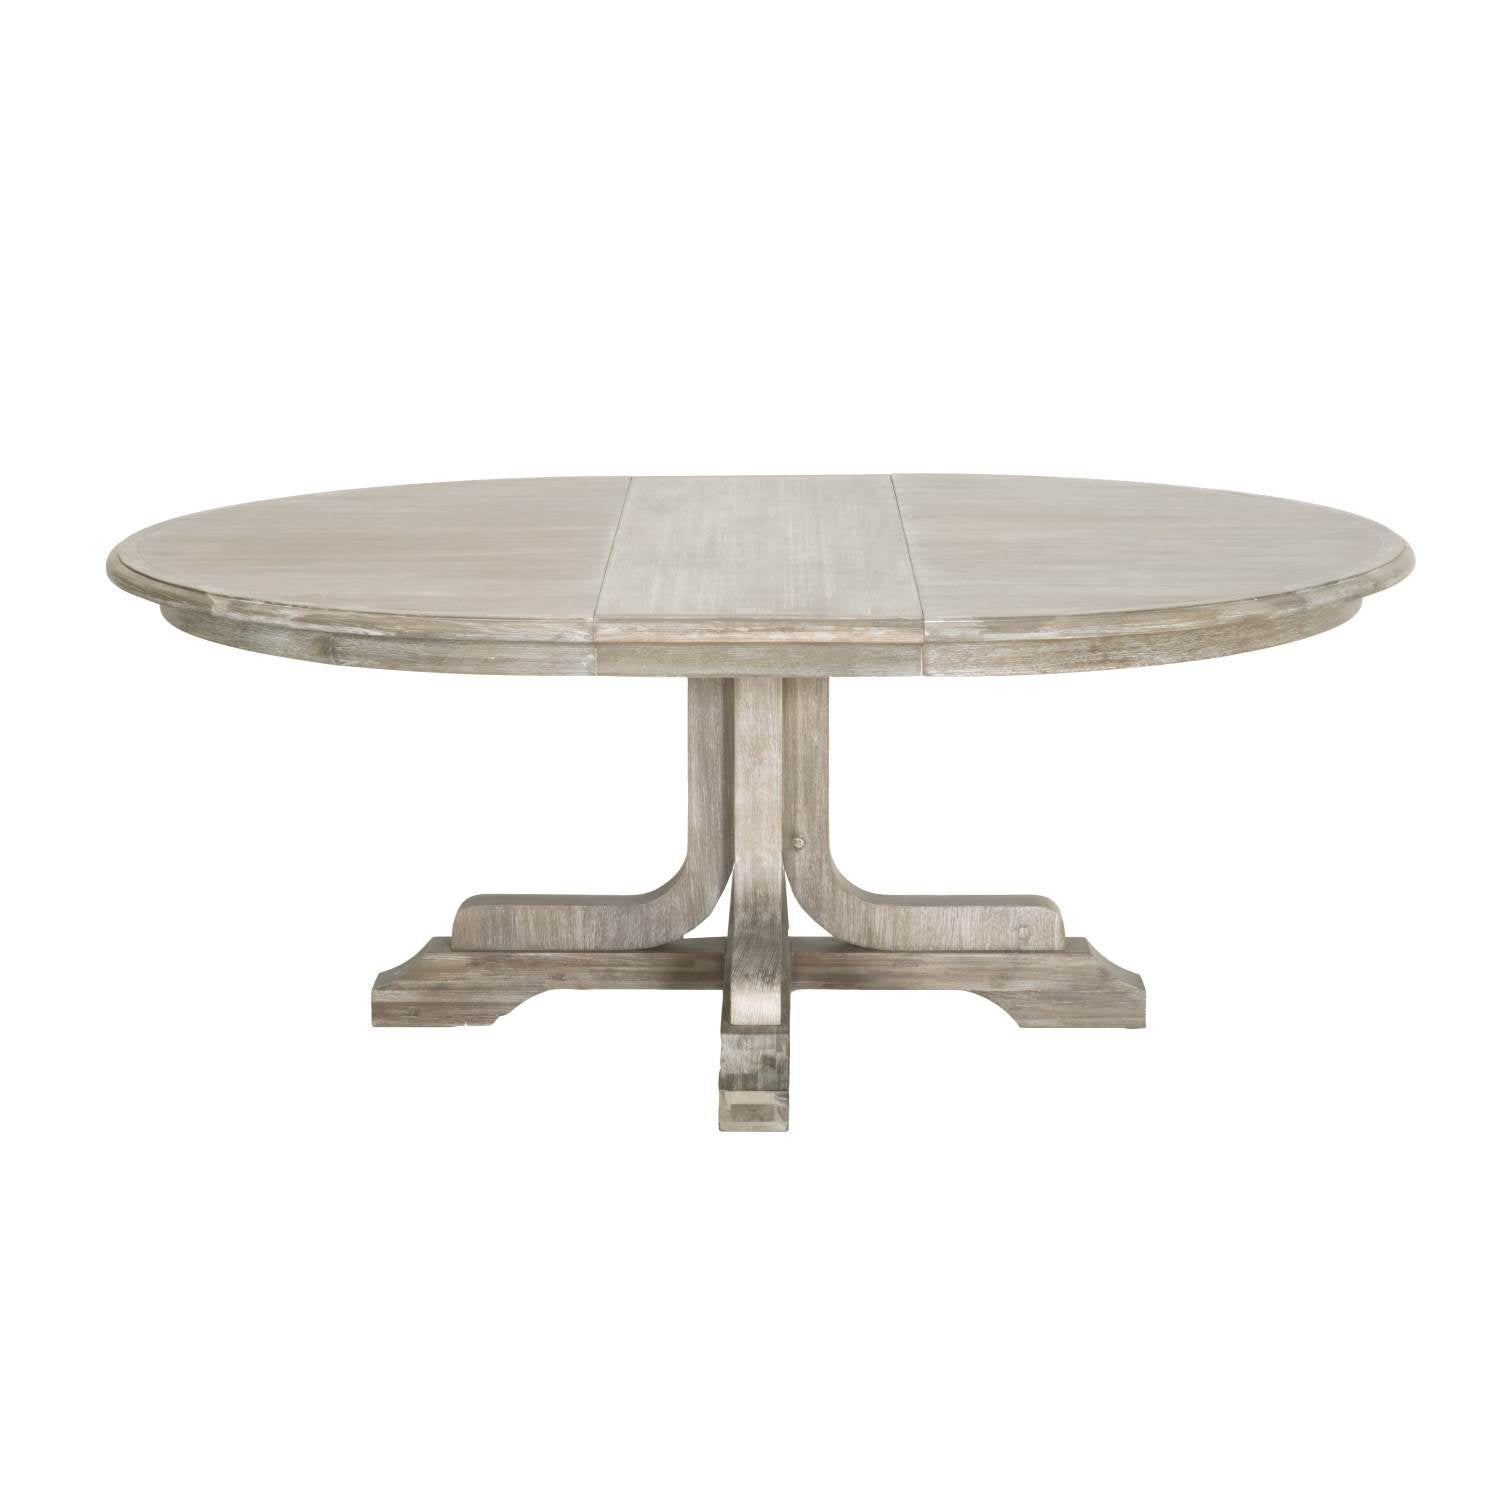 "Torrey 60"" Round Extension Dining Table in Natural Gray"